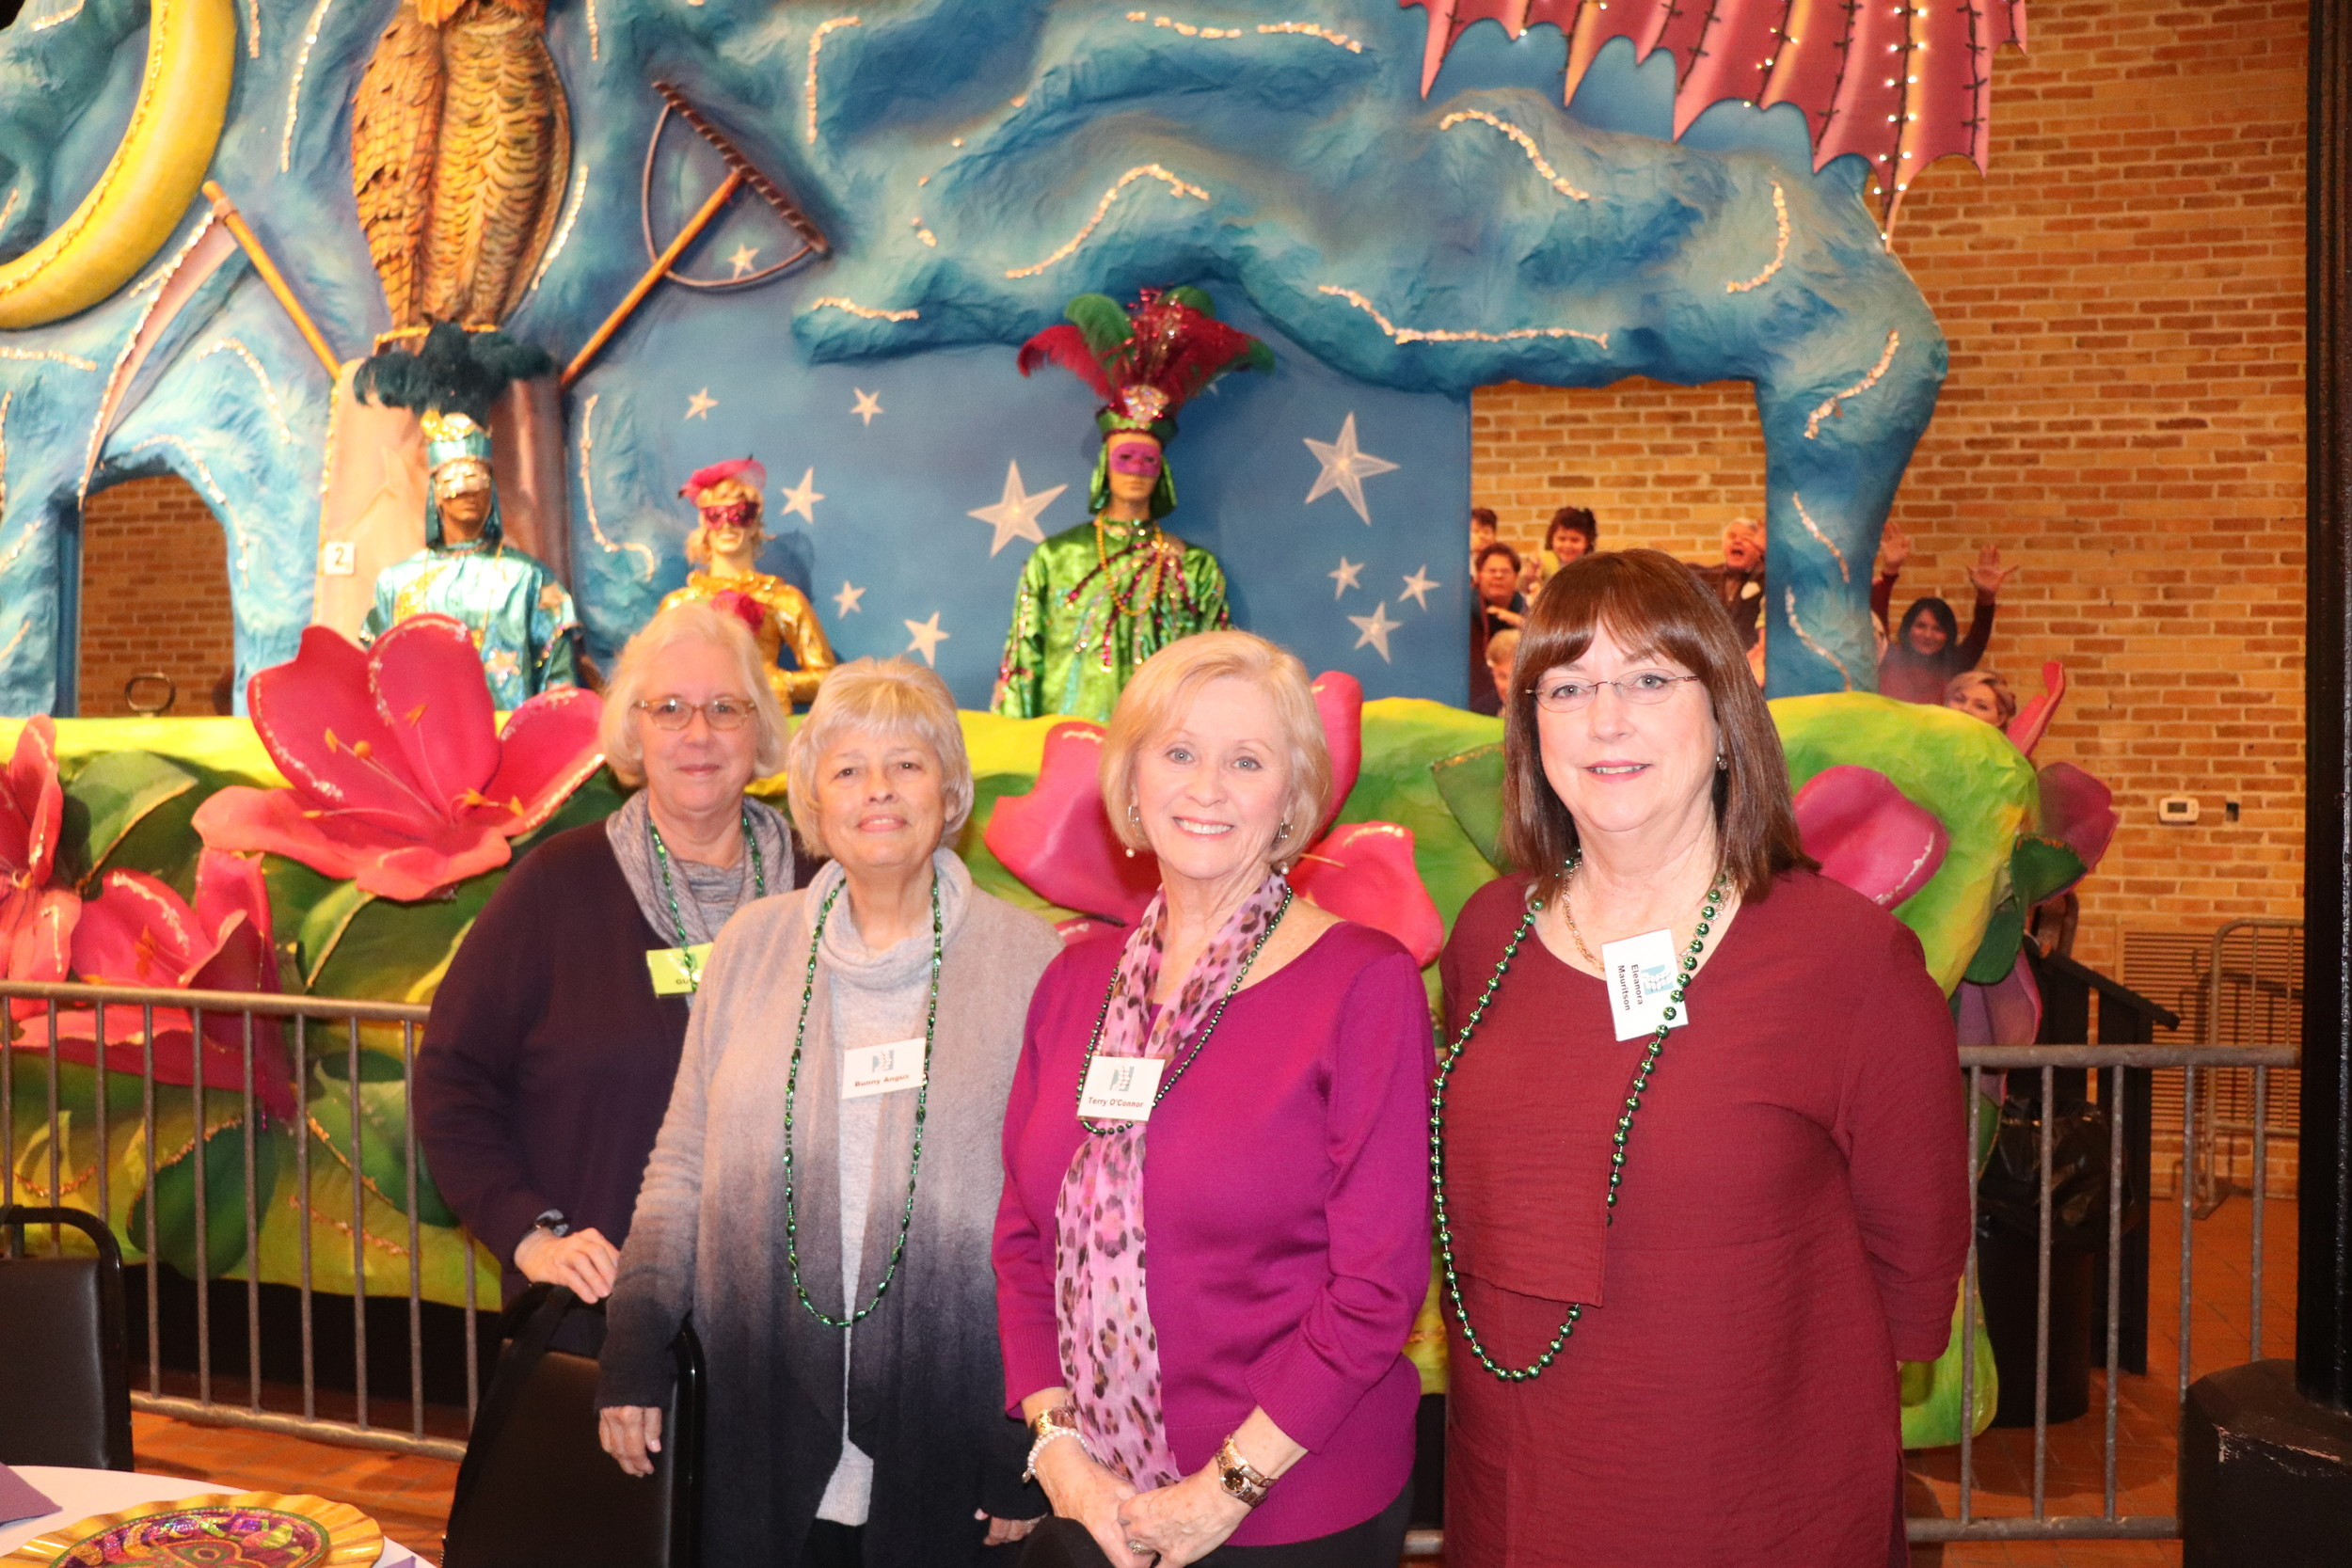 Members of S.E.L.F. of the Eastern Shore enjoy a social meeting at the Mobile Carnival Museum earlier this month. The organization helps connect women to volunteer opportunities throughout Baldwin County.